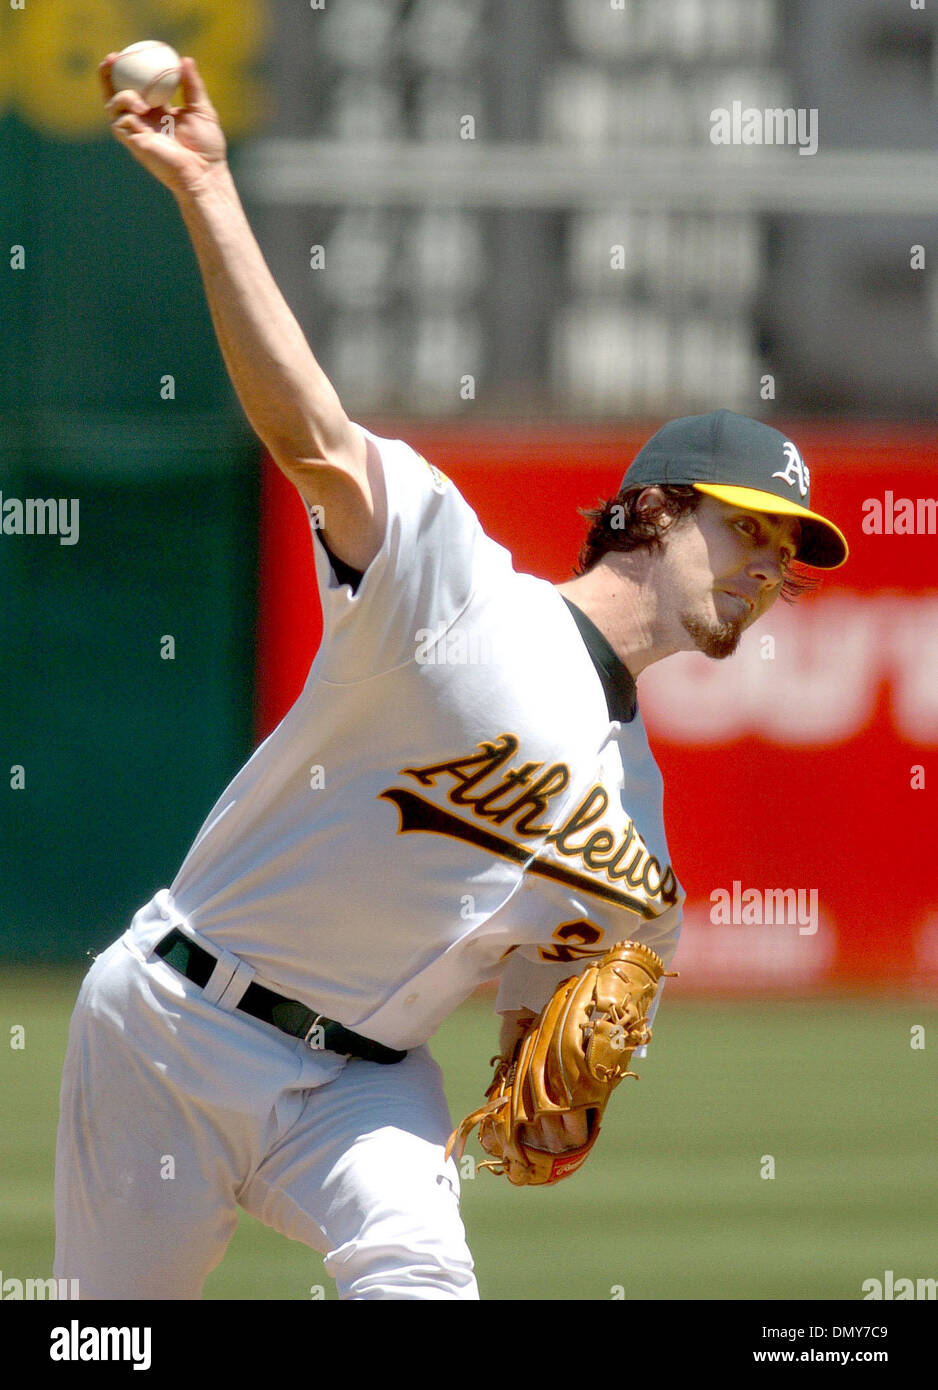 Jul 26, 2006; Oakland, CA, USA; The Oakland Athletics' DAN HAREN pitched a strong game against the Boston Red Sox. The A's defeated the Red Sox 5-1 at McAfee Coliseum in Oakland, California, on Wednesday, July 26, 2006. Mandatory Credit: Photo by Dan Honda/Contra Costa Times/ZUMA Press. (©) Copyright 2006 by Contra Costa Times Stock Photo